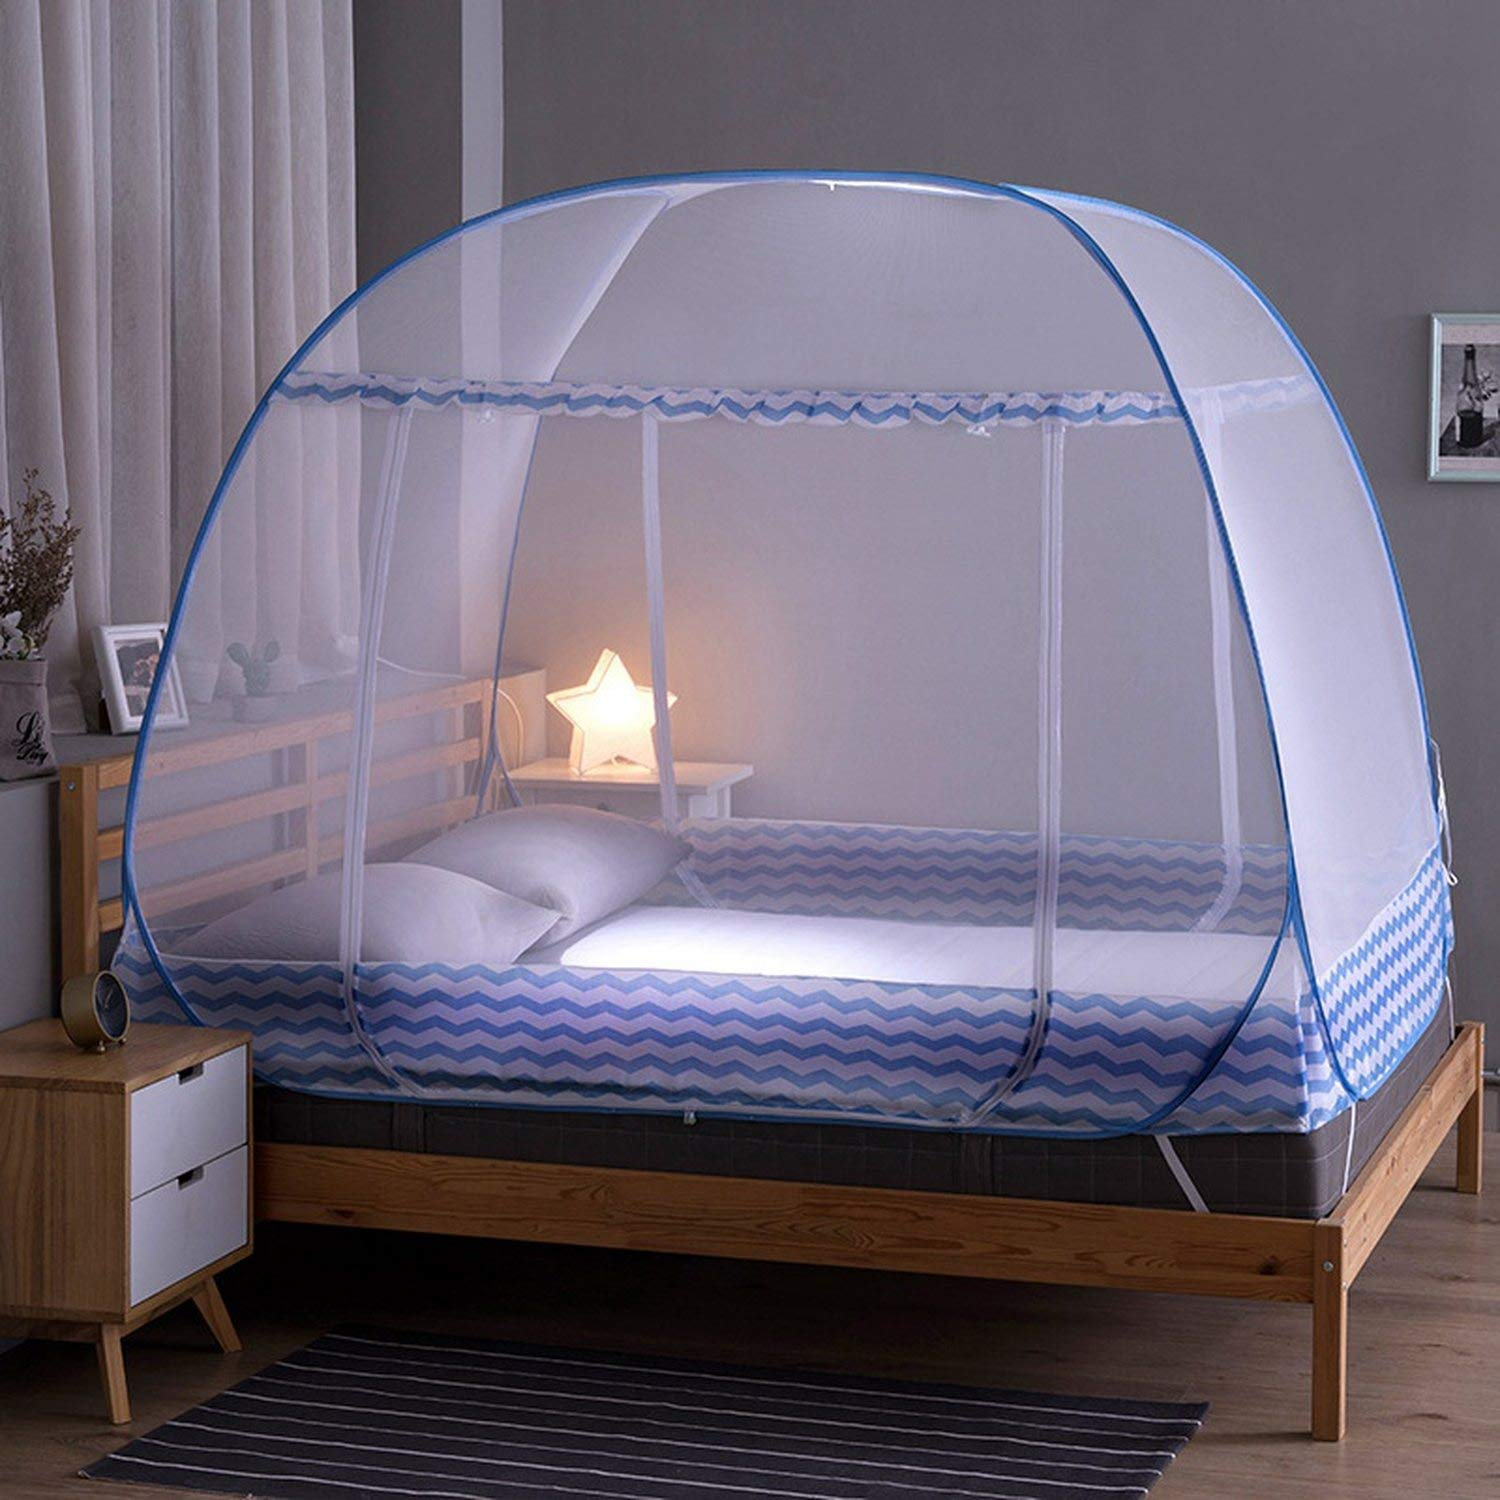 Mosquito Bed Netting Tent Durable Home Decor Student Bunk Breathable Mosquito Net Bed Net Mesh Tent,Blue,M by Try My Best Mosquito Net (Image #2)